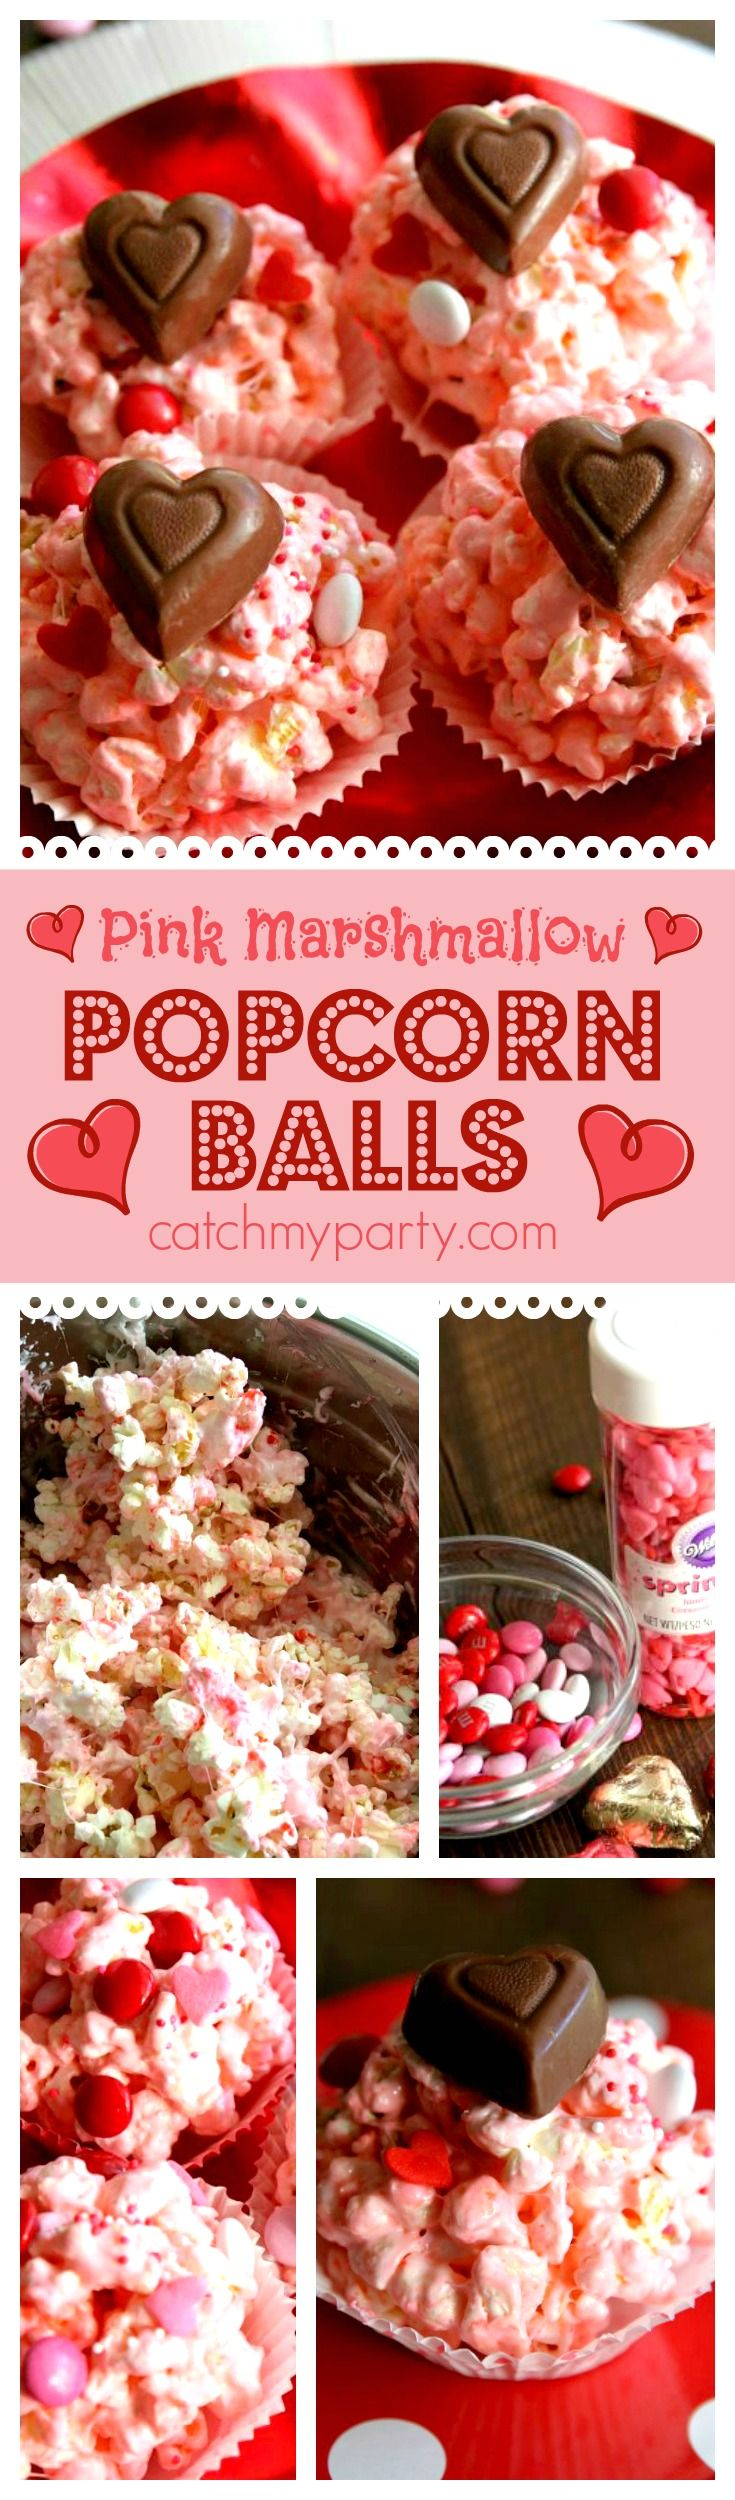 Pink marshmallow popcorn balls perfect treat for Valentine's Day. Make them in 10 minutes in the microwave. Great to serve at a kids Valentine's Day party. See more party ideas at CatchMyParty.com.